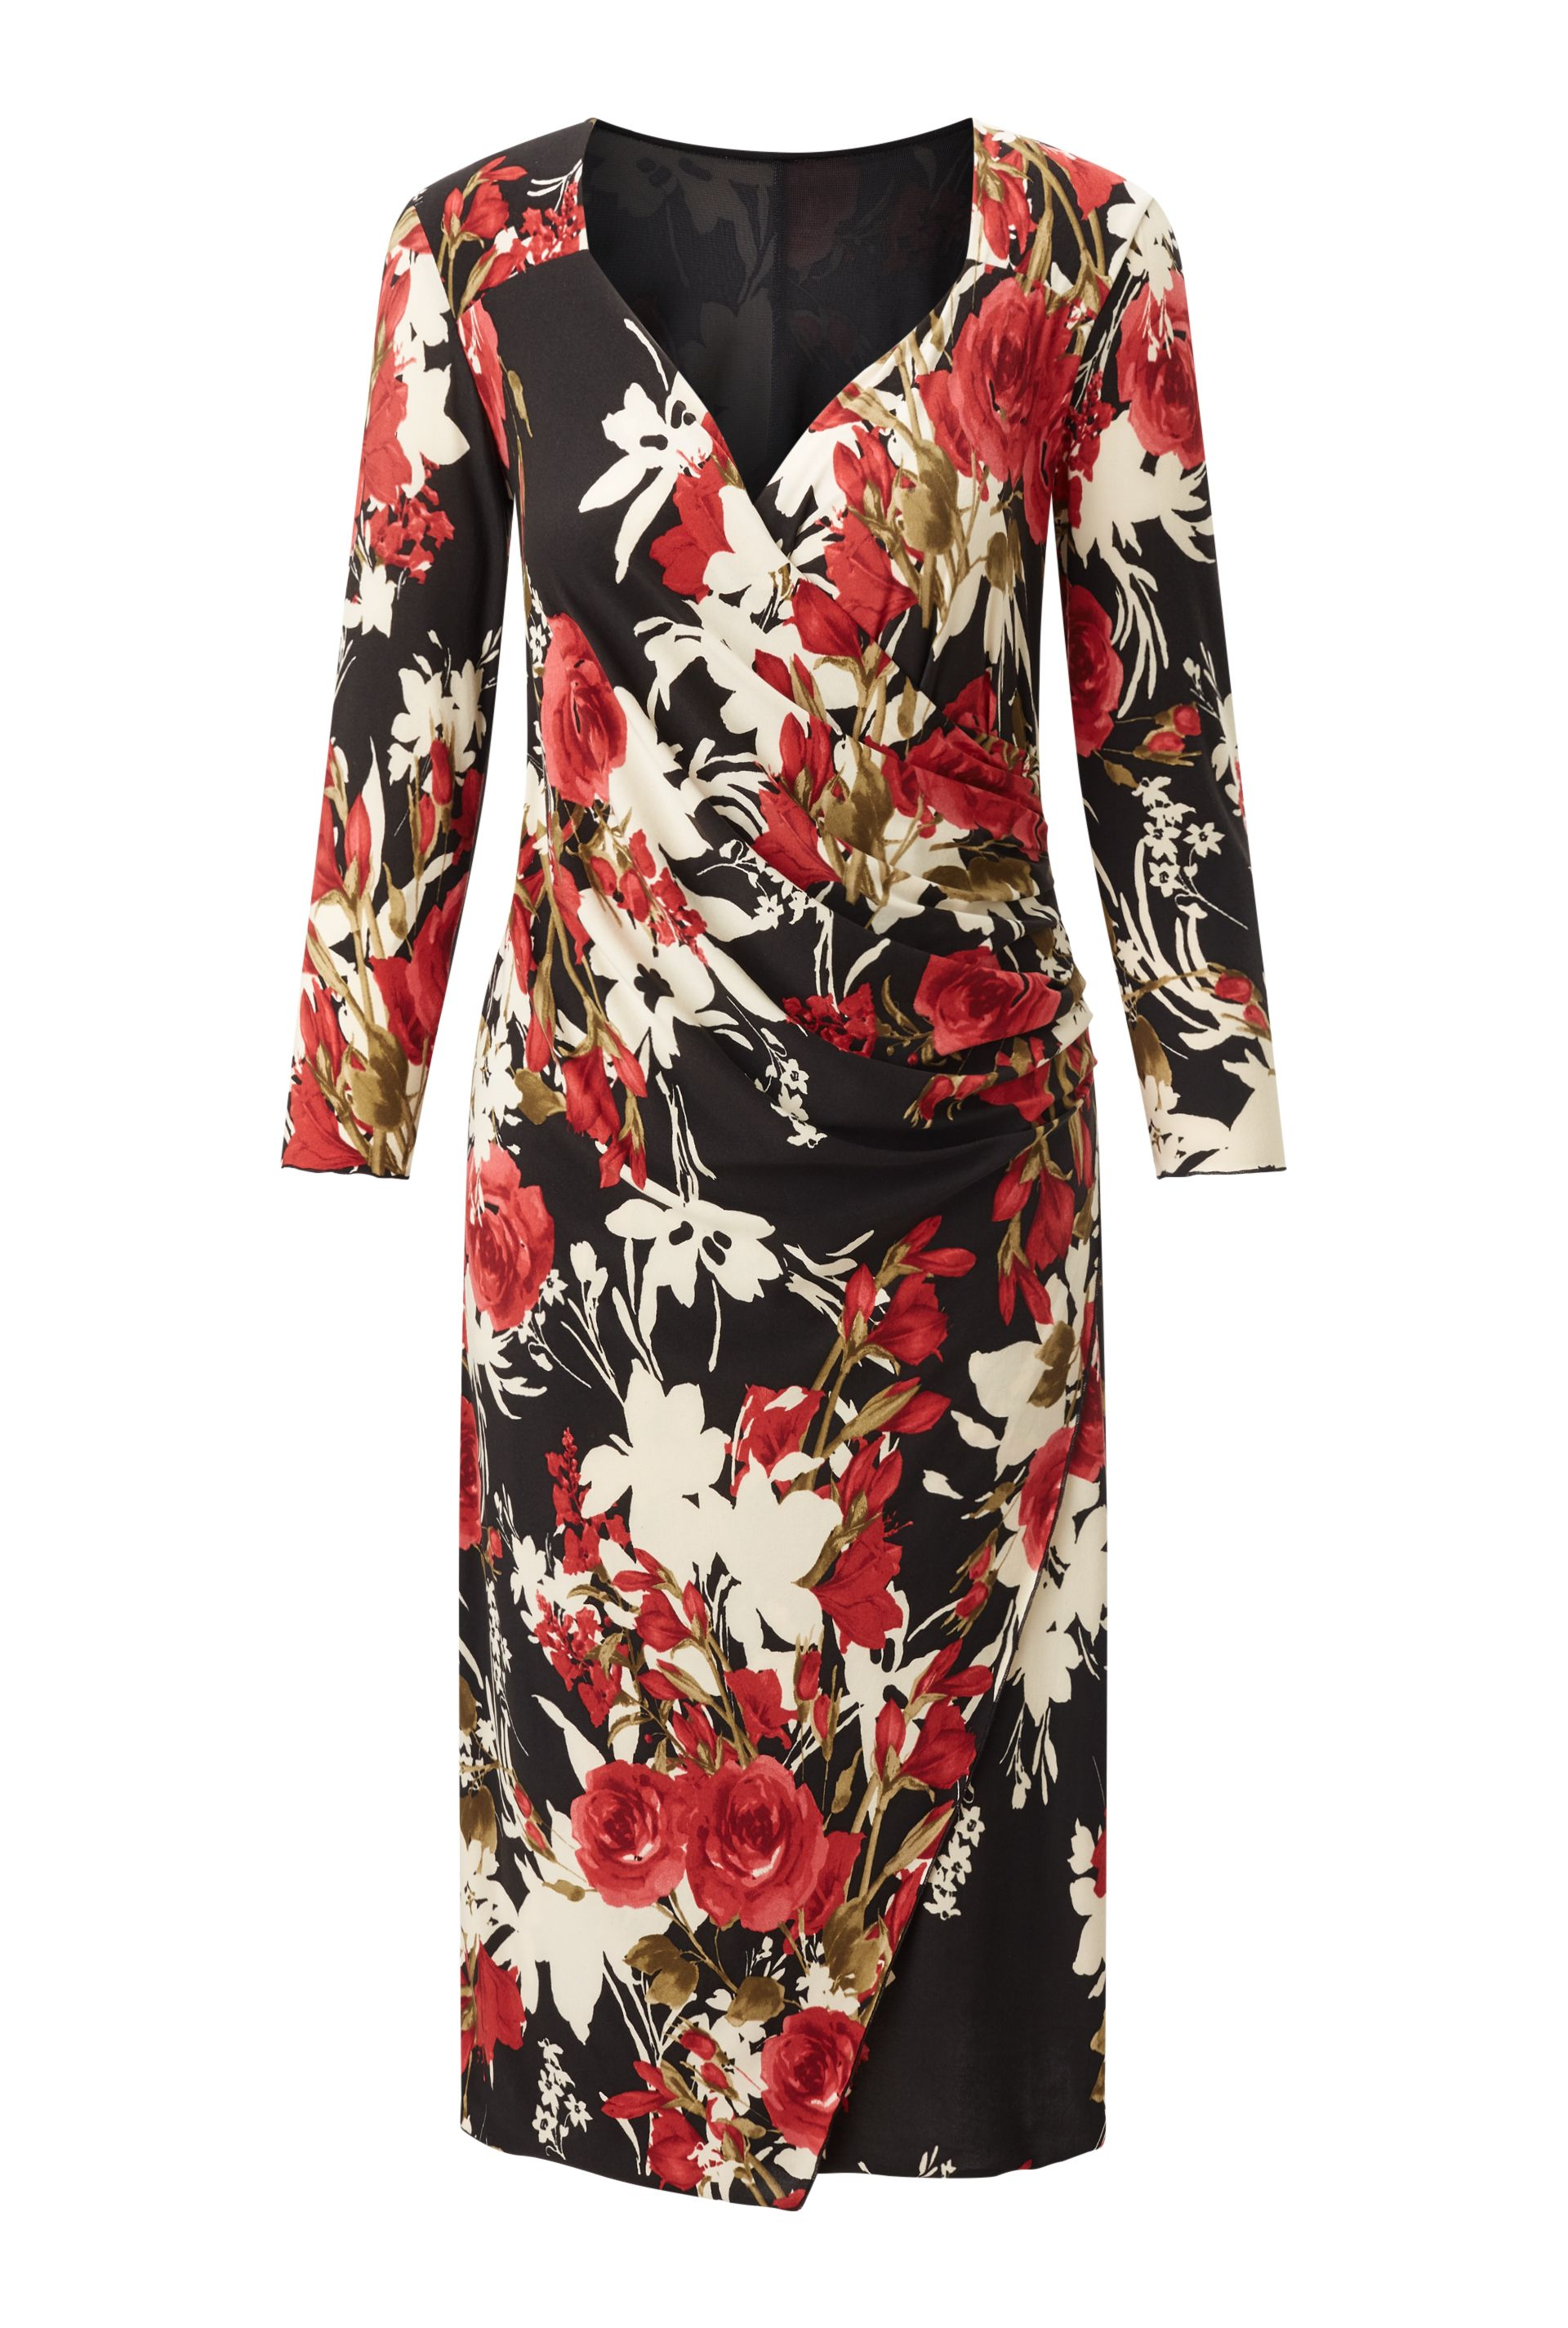 James Lakeland Rose Print Dress, Black/White